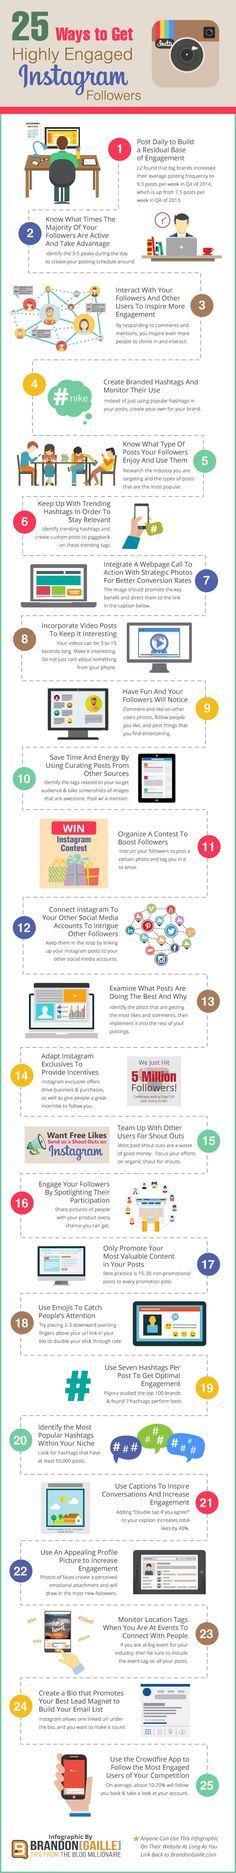 25 Ways To Get Instagram Followers - Infographic #socialmediamarketingtips